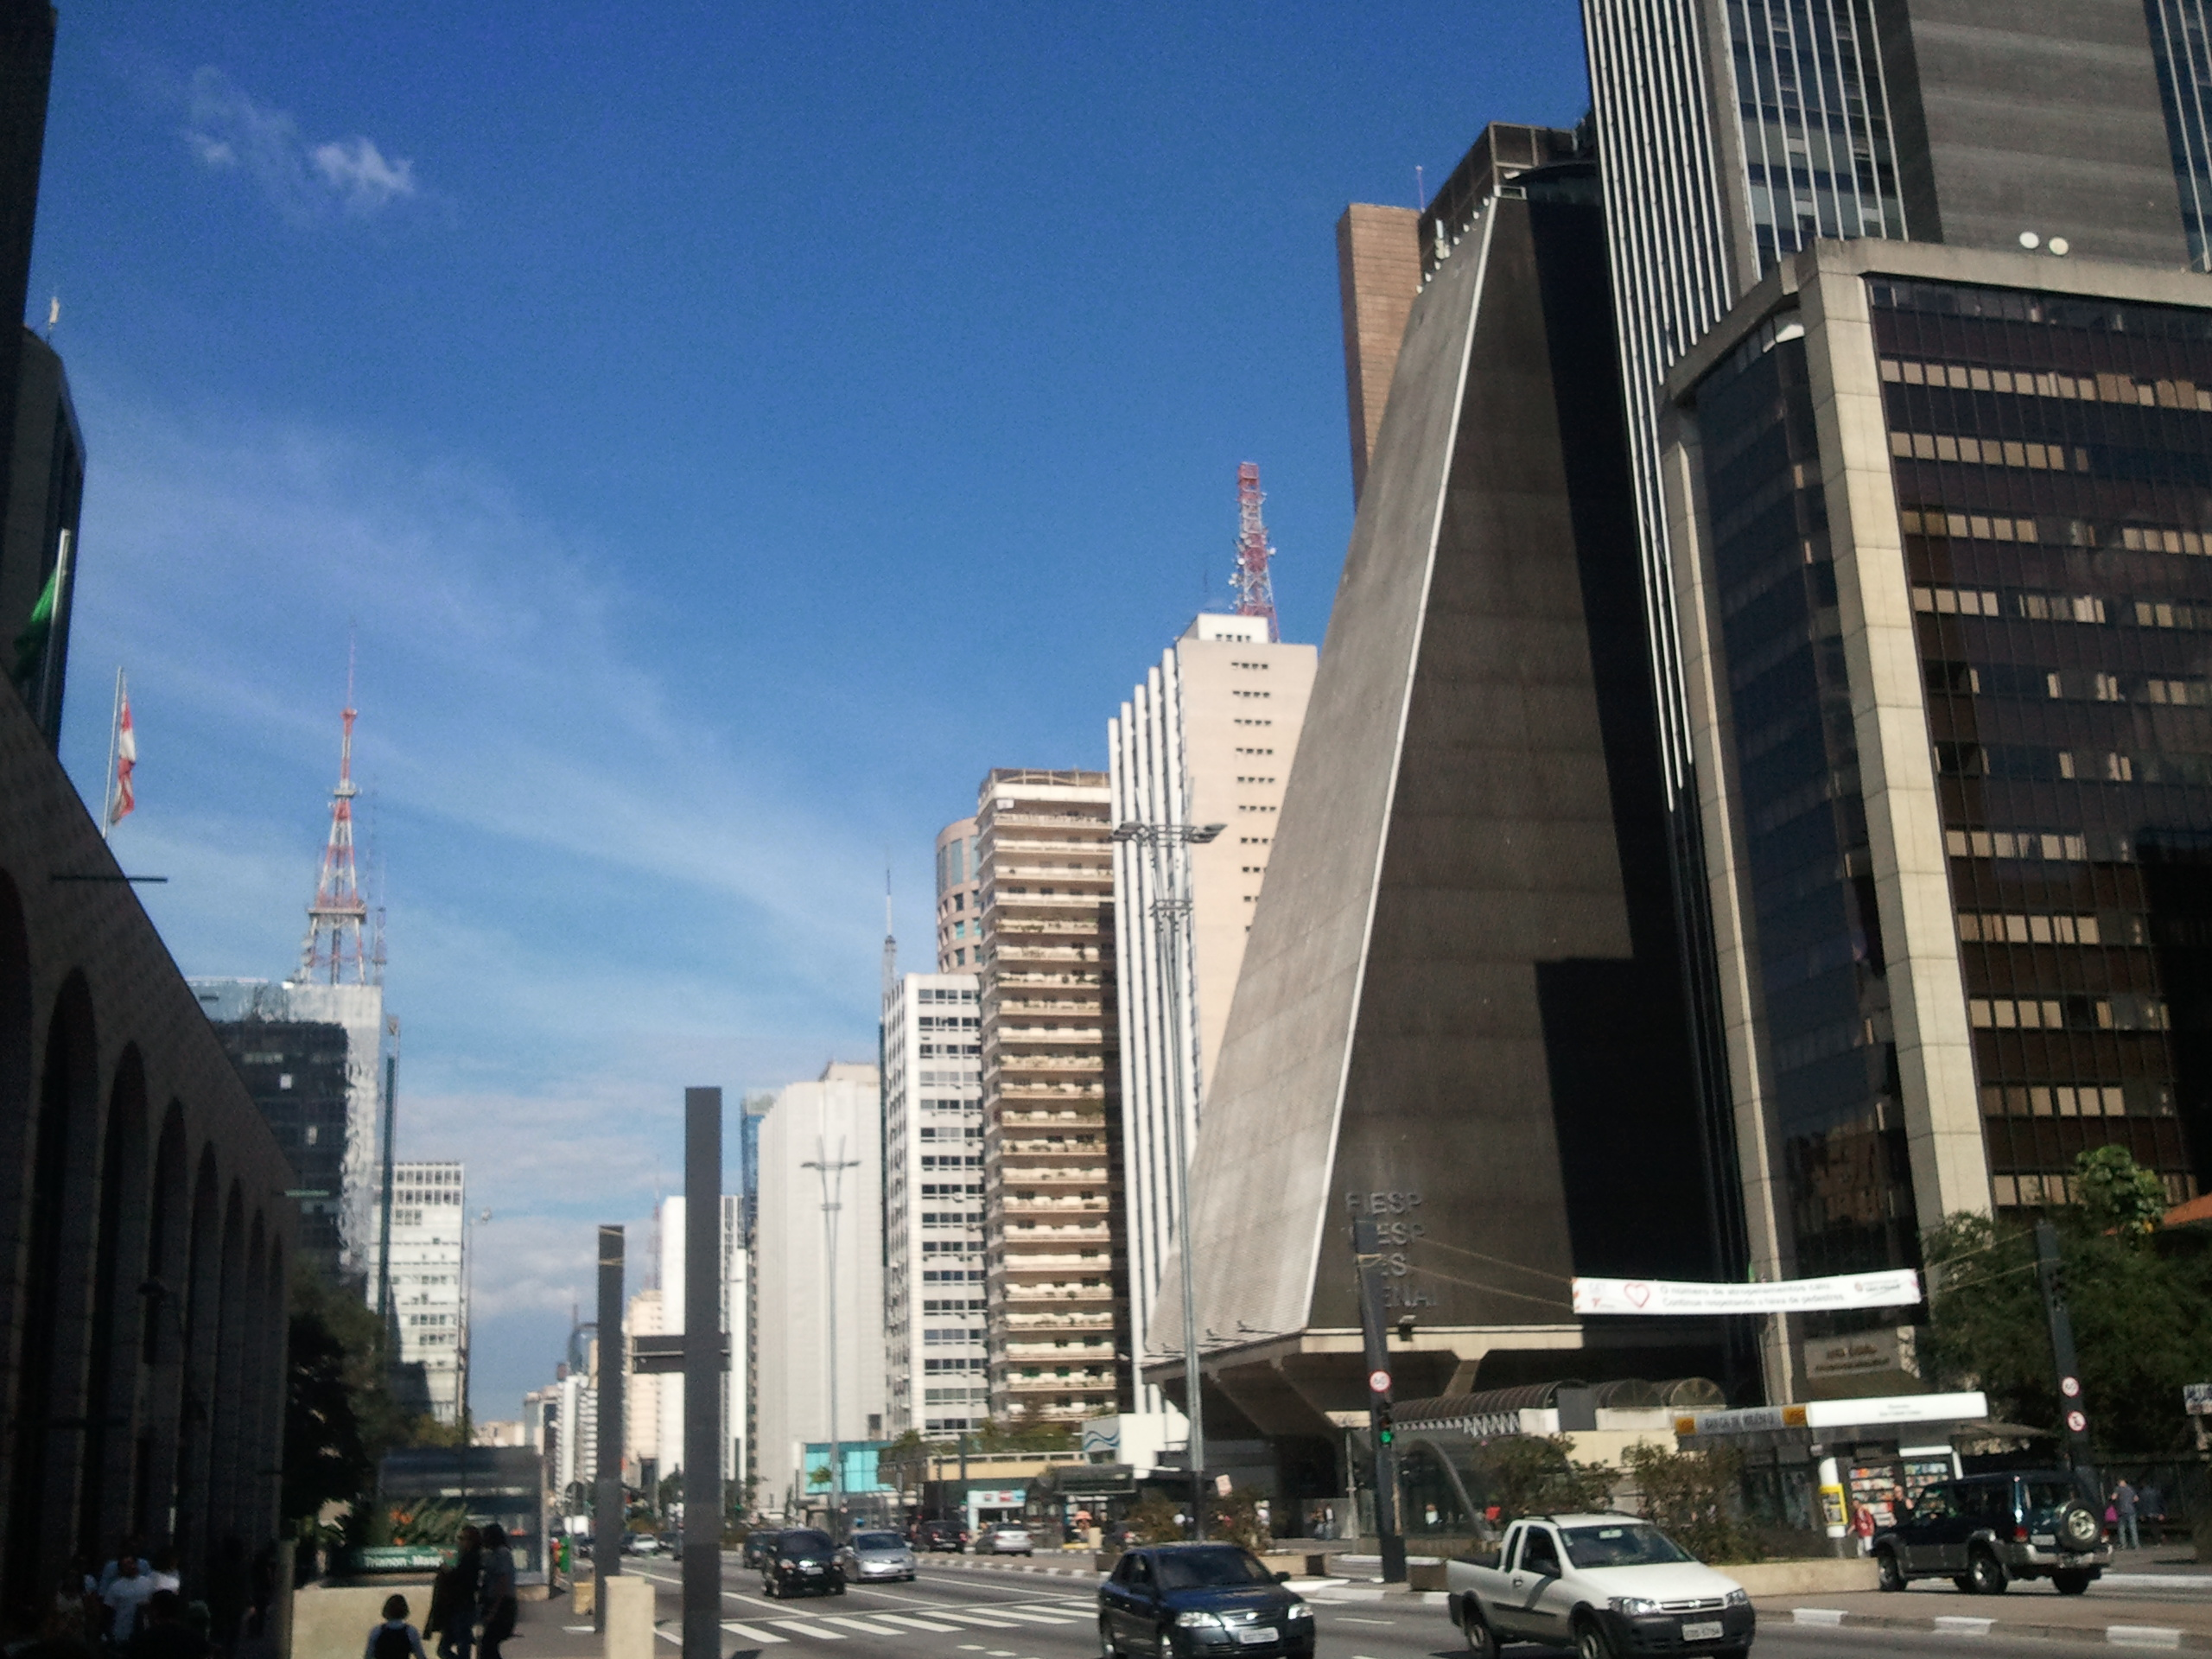 Avenida Sao Paulo with the sharp triangular edge of the FIESP building in the center. Sao Paulo will always be Brazil's economic hub. But if you're a retailer looking to expand, it's not going to be here. (Photo by Jackie O. Cruz/FORBES)